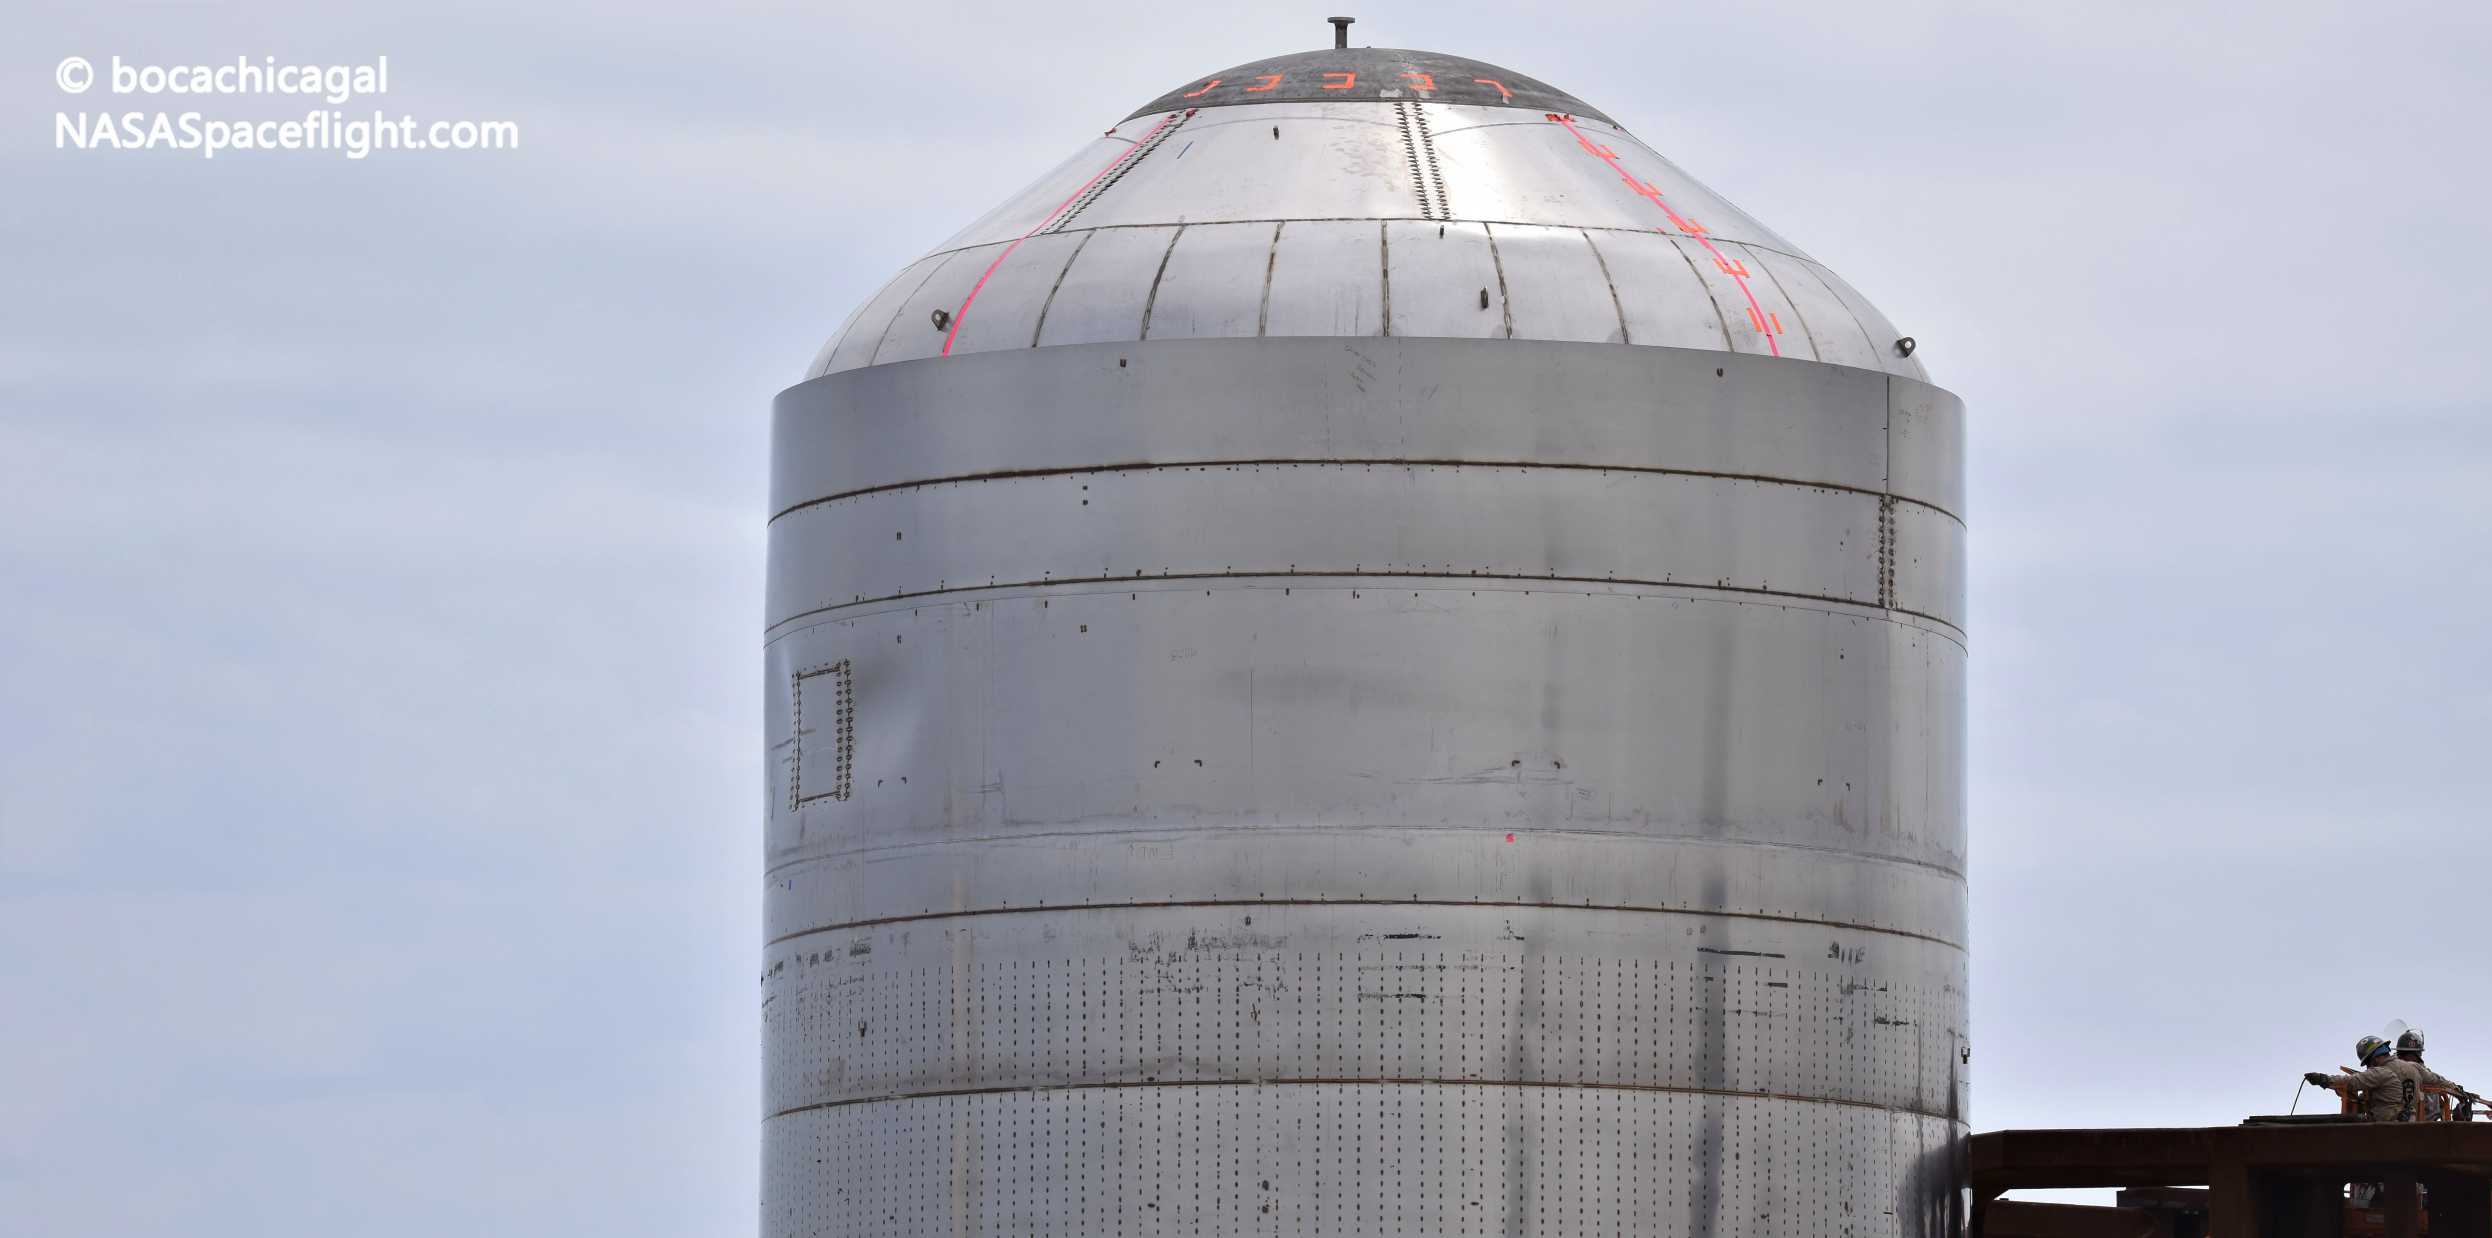 Starship Boca Chica 030920 (NASASpaceflight – bocachicagal) SN02 test tank 2 crop (c)